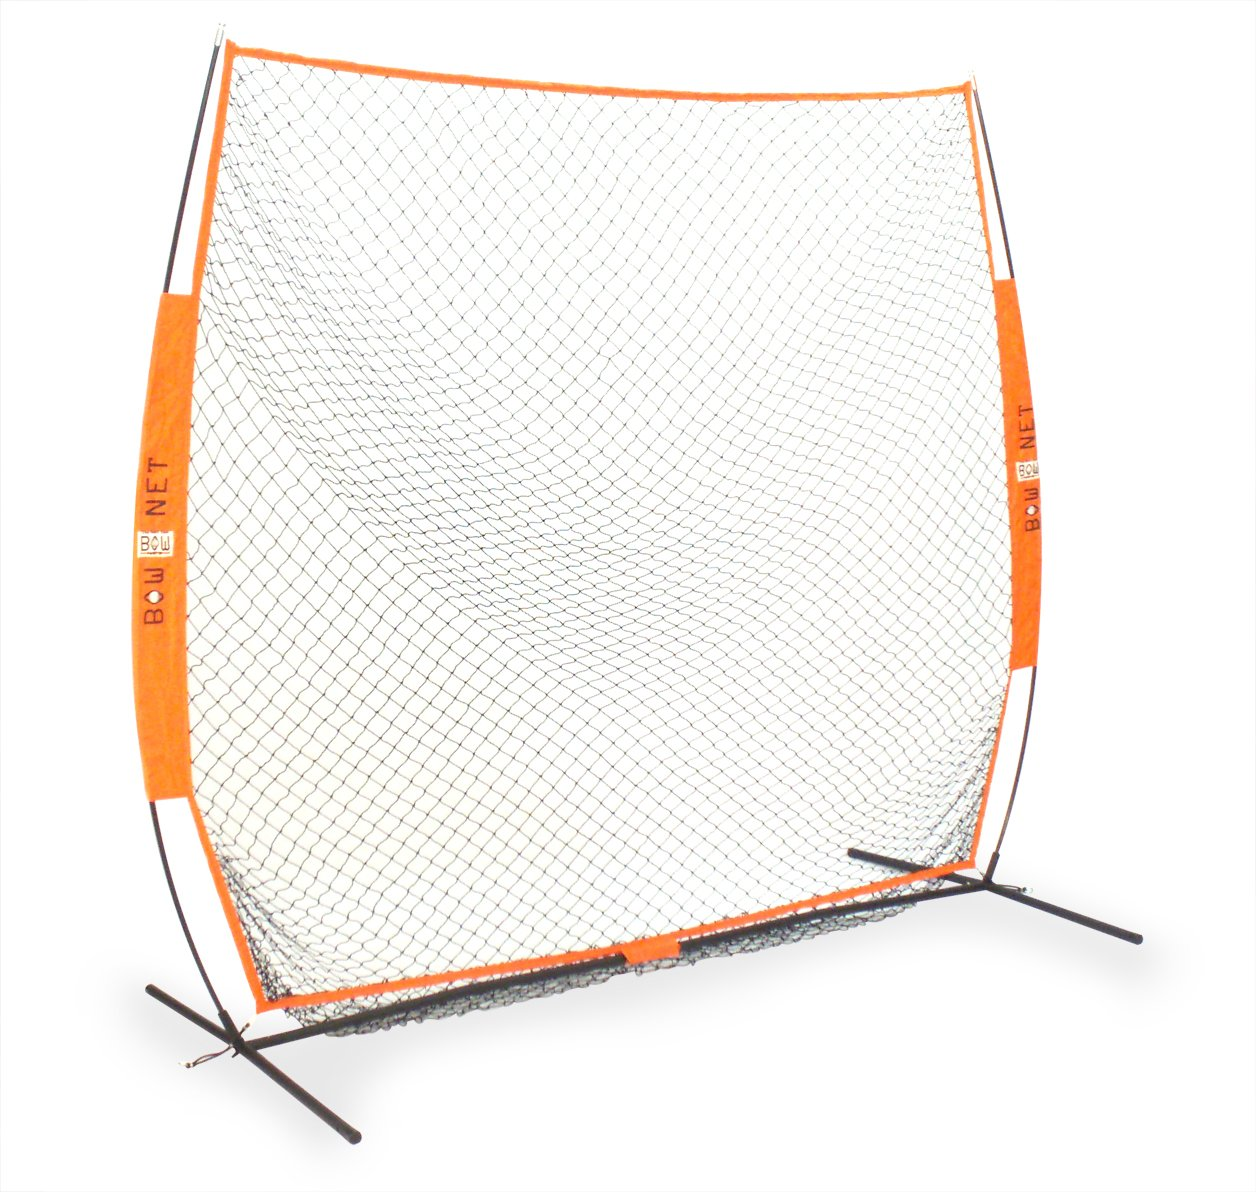 Soft Toss Portable Practice Net with Frame